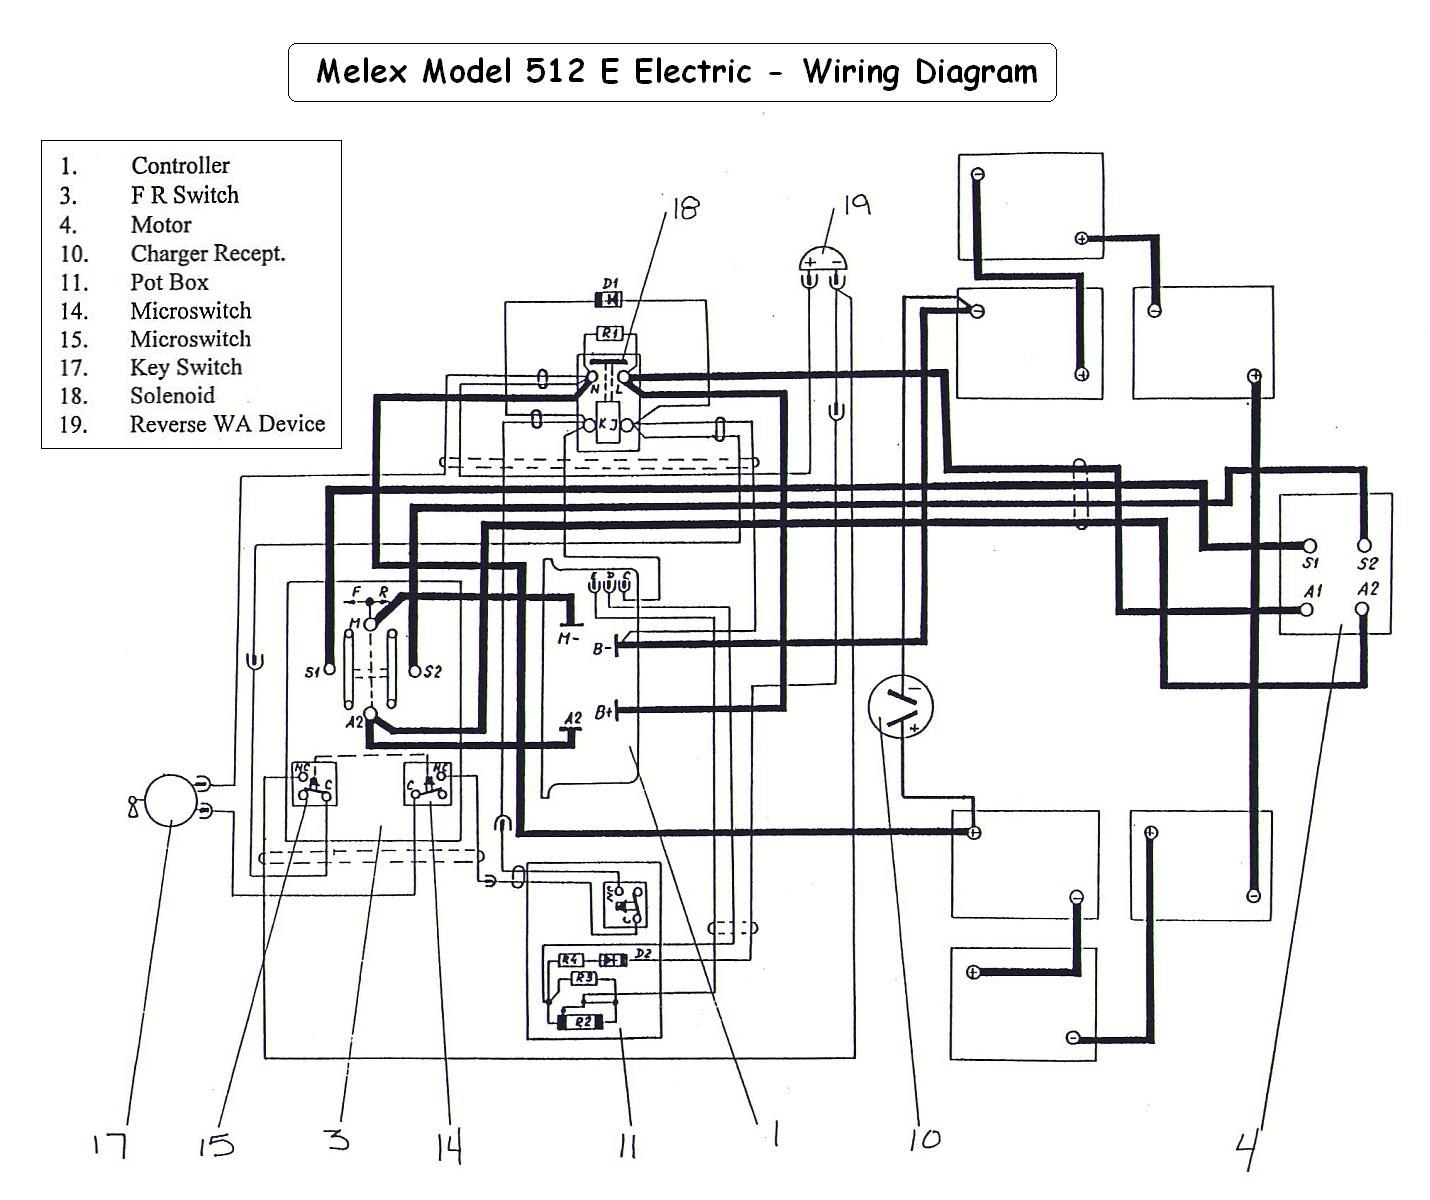 Troubleshooting Trailer Lights Wiring Diagram Real Images Gallery